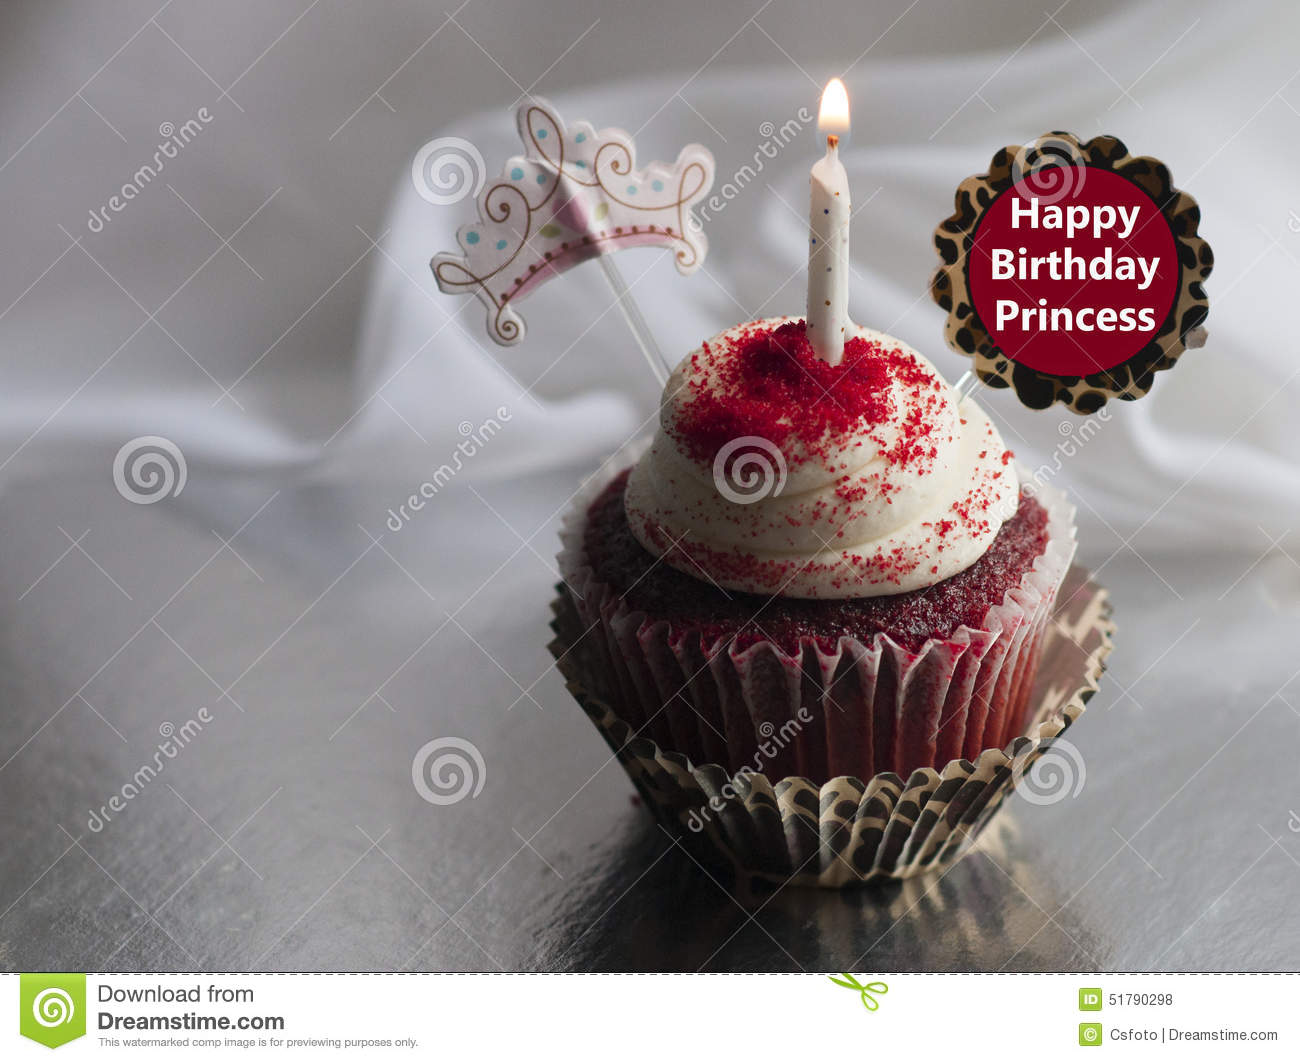 Happy Birthday Princess Cake With Candles ~ Happy birthday princess celebration cupcake stock photo